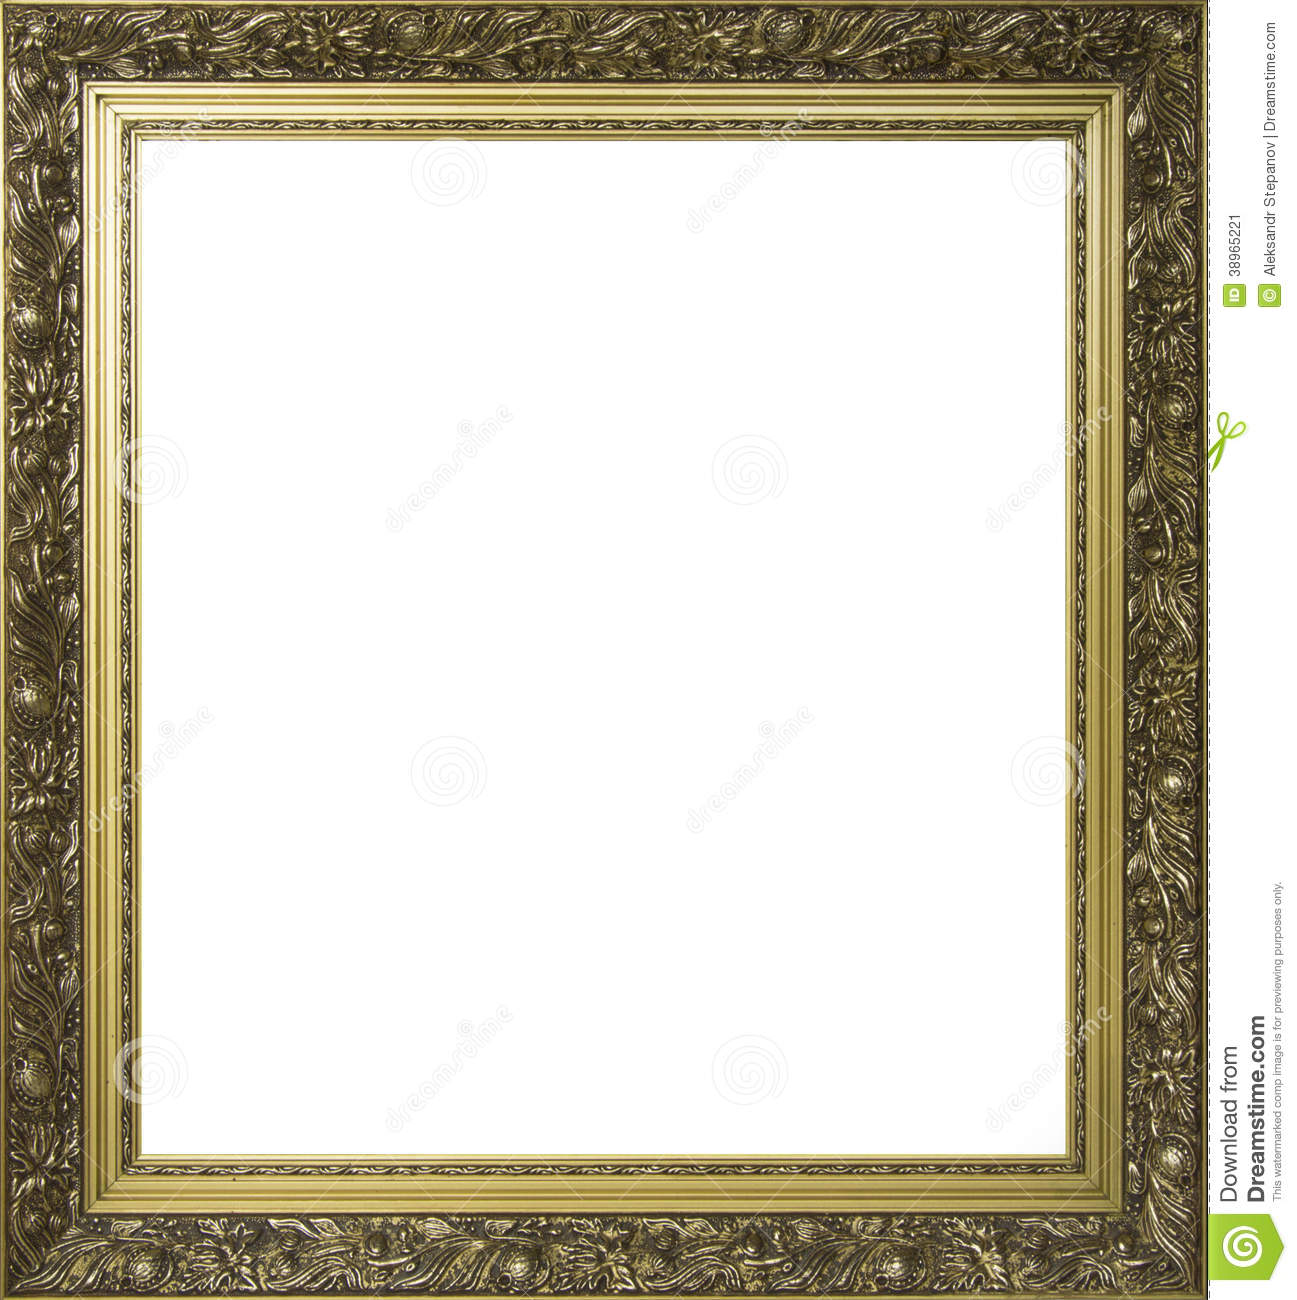 Painting Frames Gold Plated Ornamental Frame For Painting Stock Photo